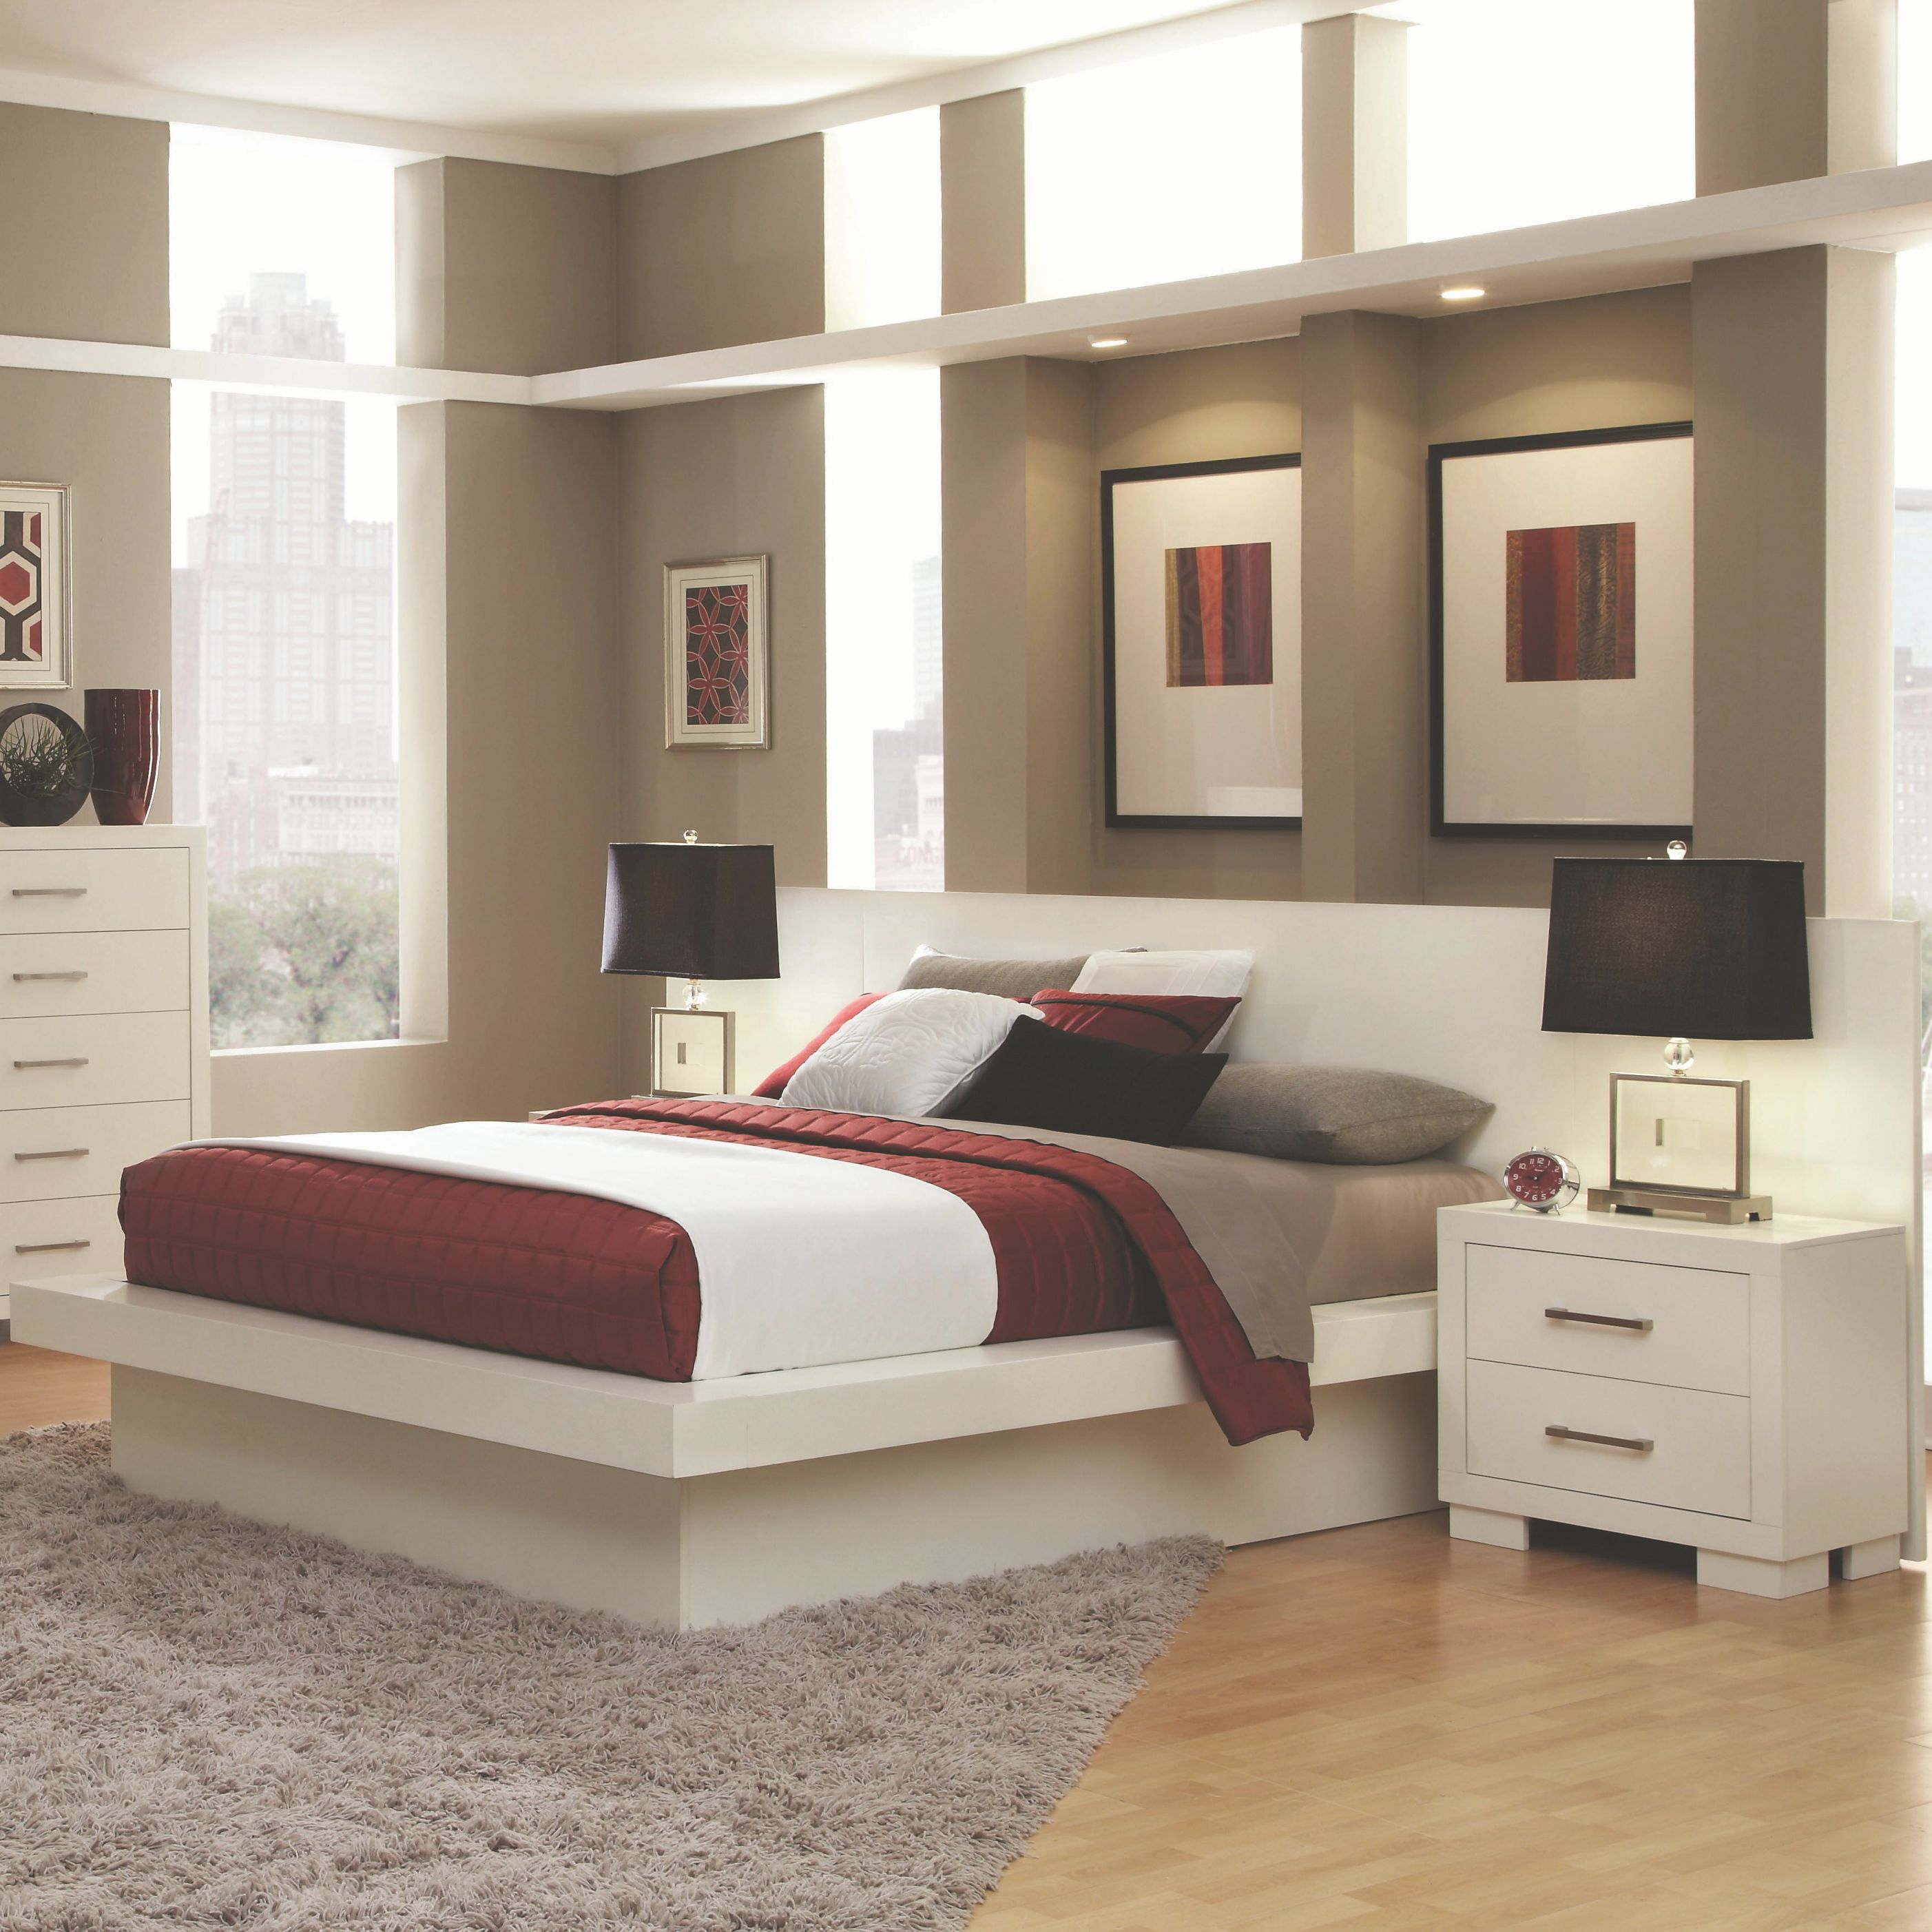 Jessica Queen Pier Platform Bed With Rail Seating And Lightscoaster At  Rotmans throughout Cheap Queen Bedroom Furniture Sets